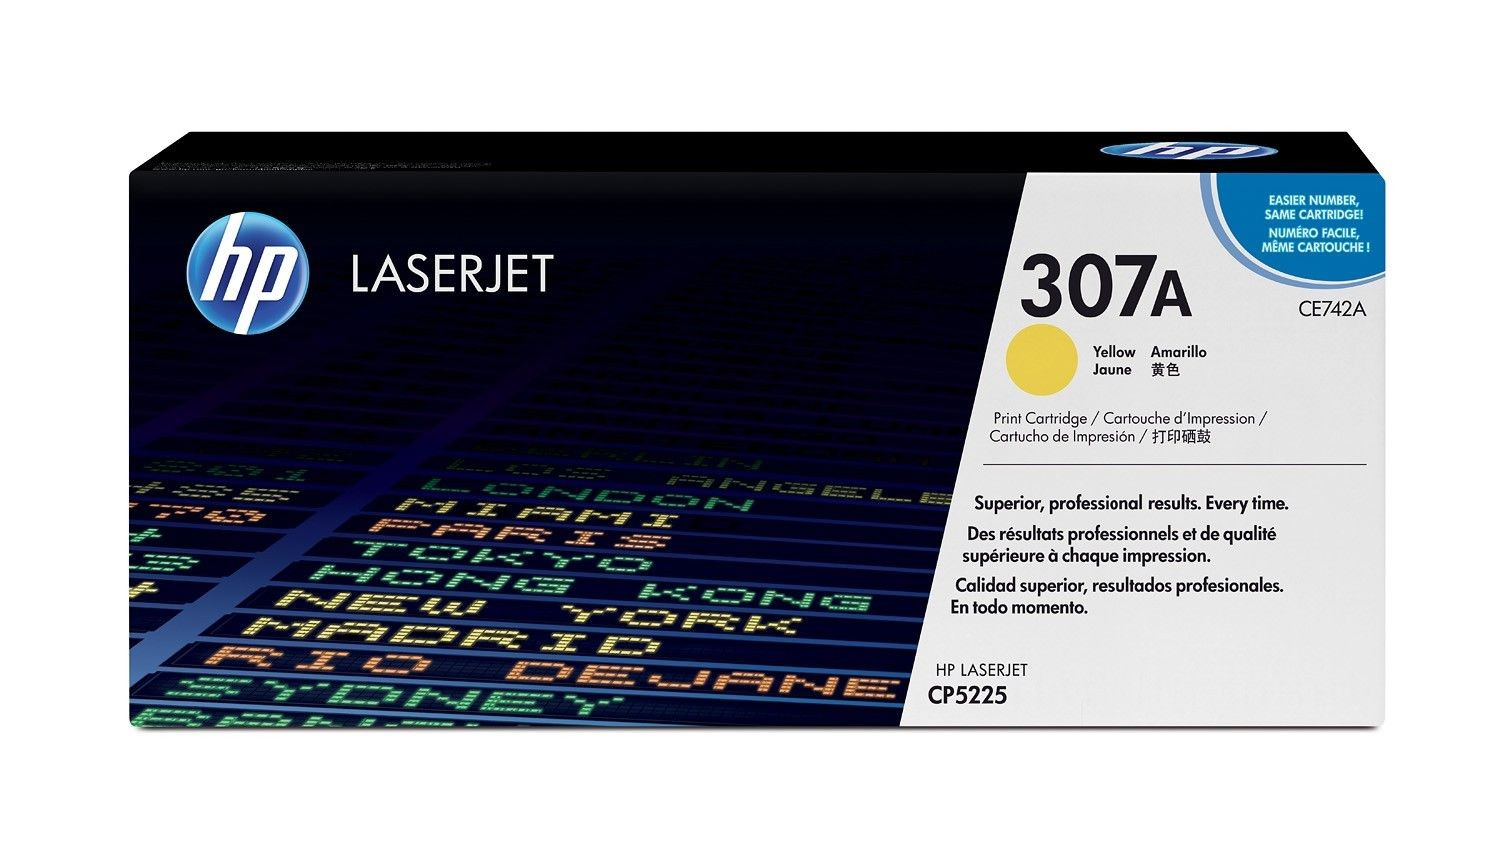 HP Toner HP yellow | 7300str | CLJ CP5220